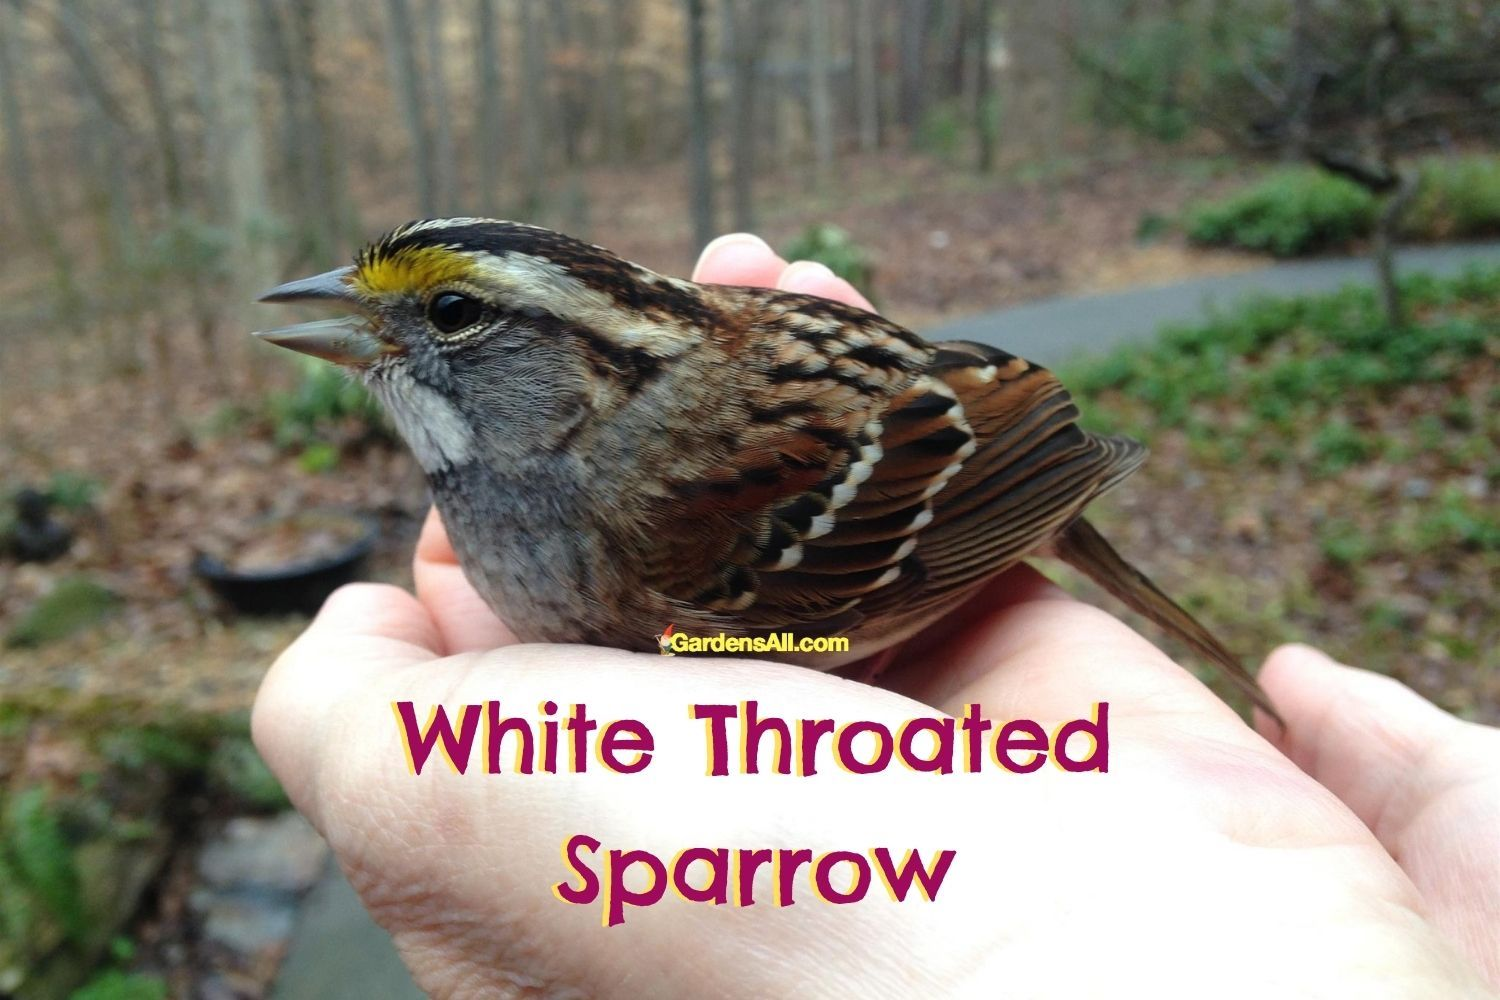 Rescued White Throated Sparrow bird hit window - image by GardensAll